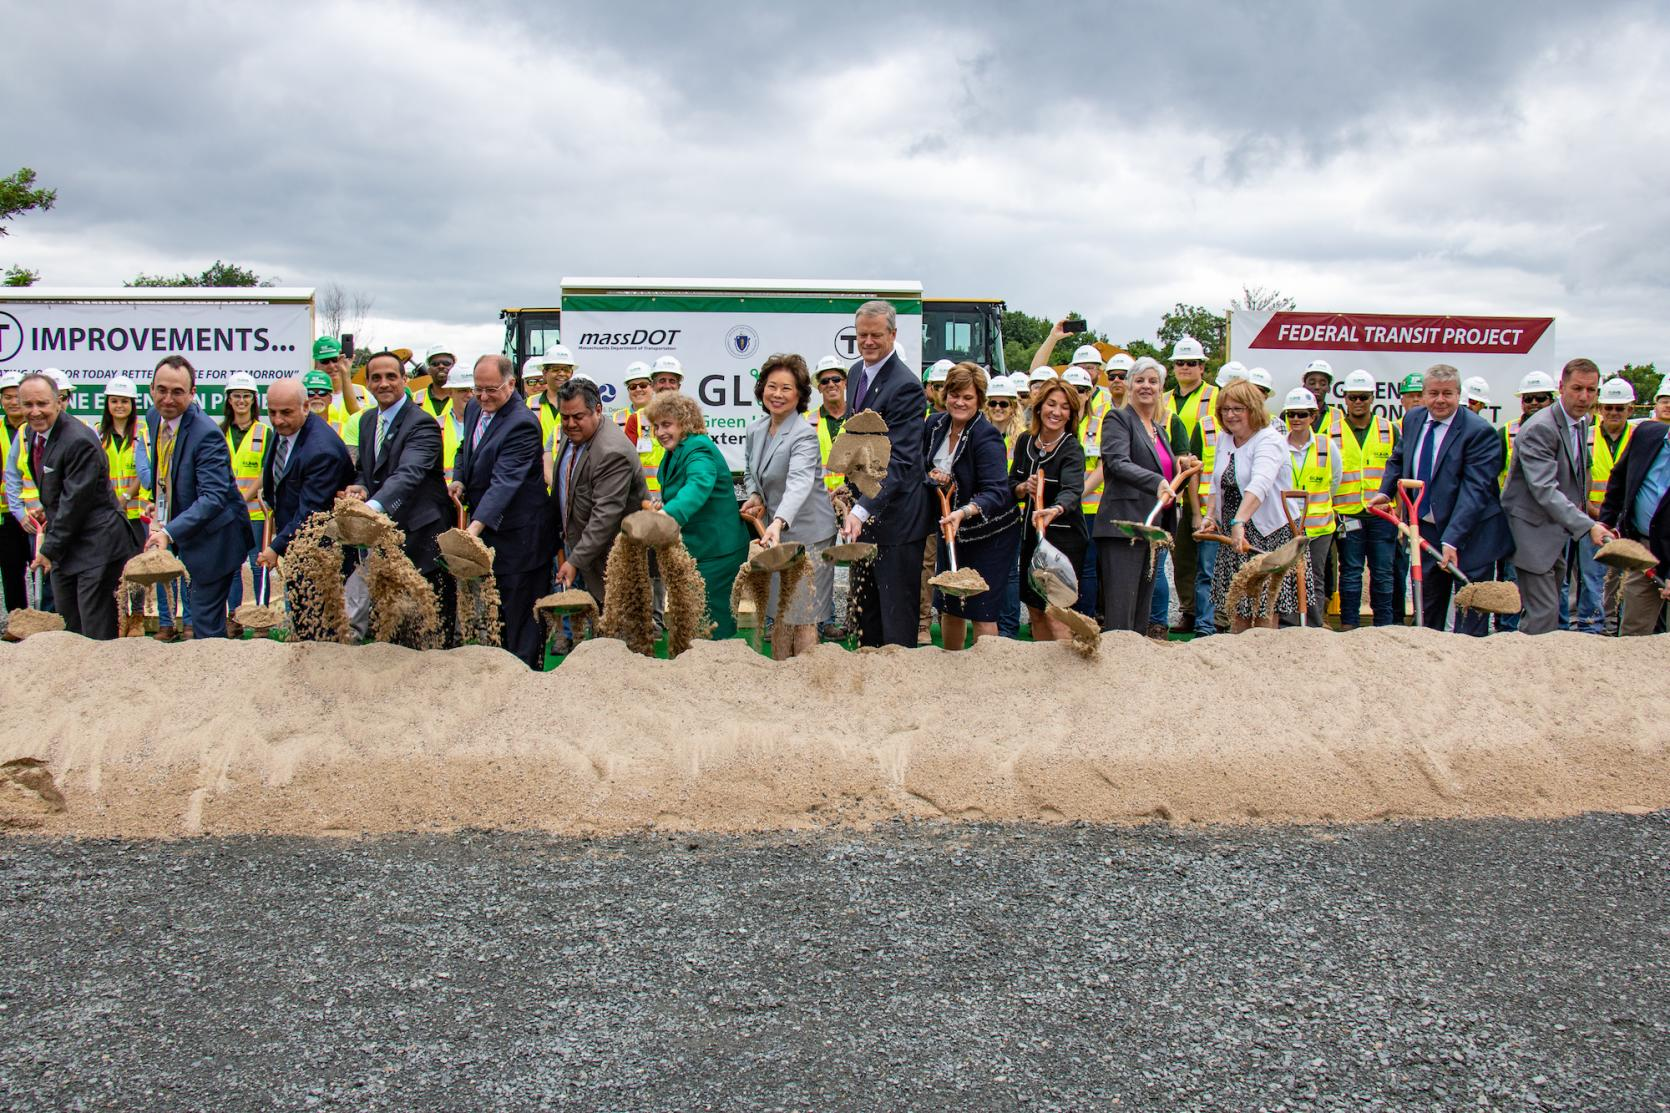 Governor Baker and numerous officials break ground on the Green Line Extension.